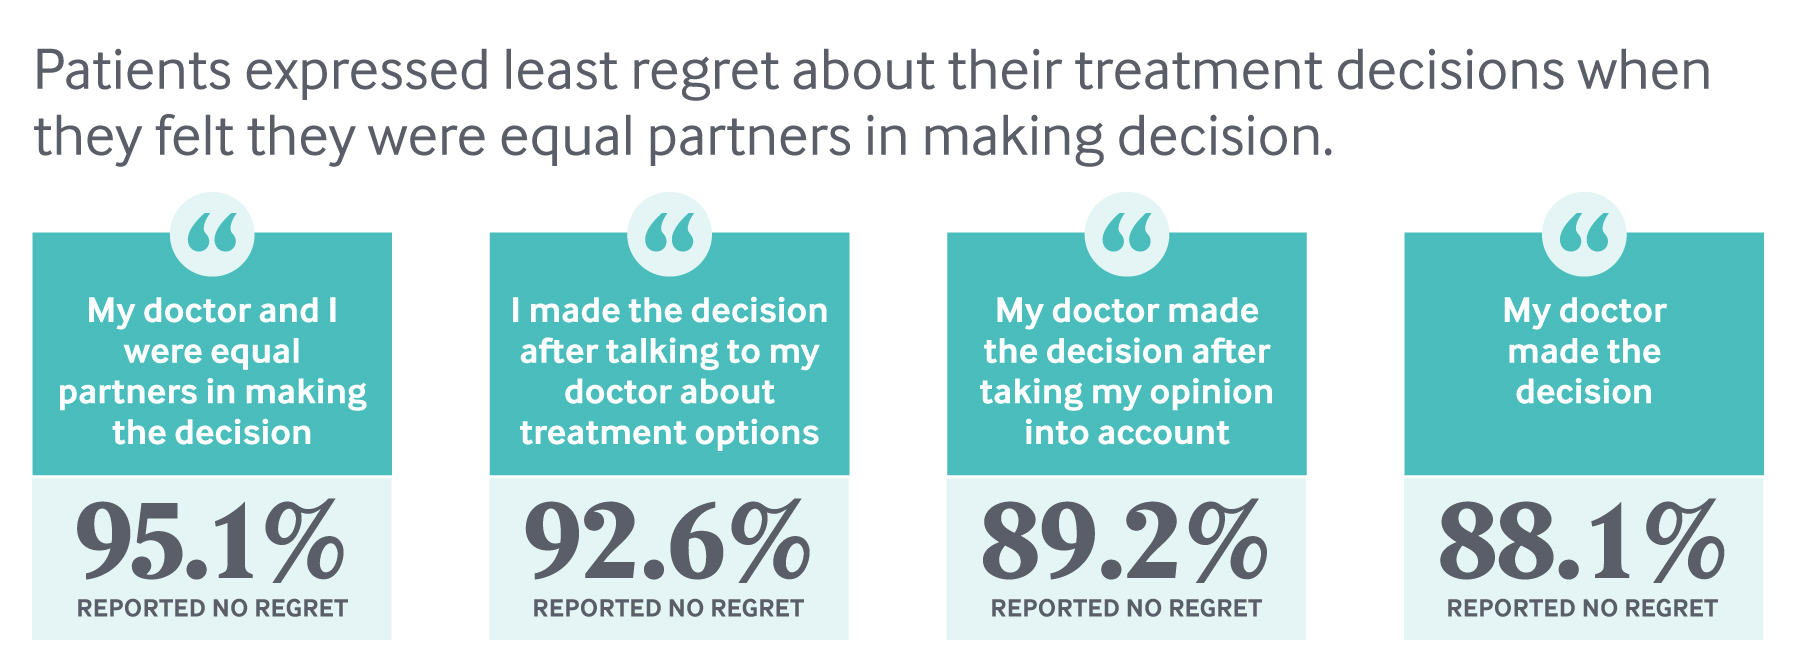 Transforming Care Engaging Patients in Shared Decision-Making